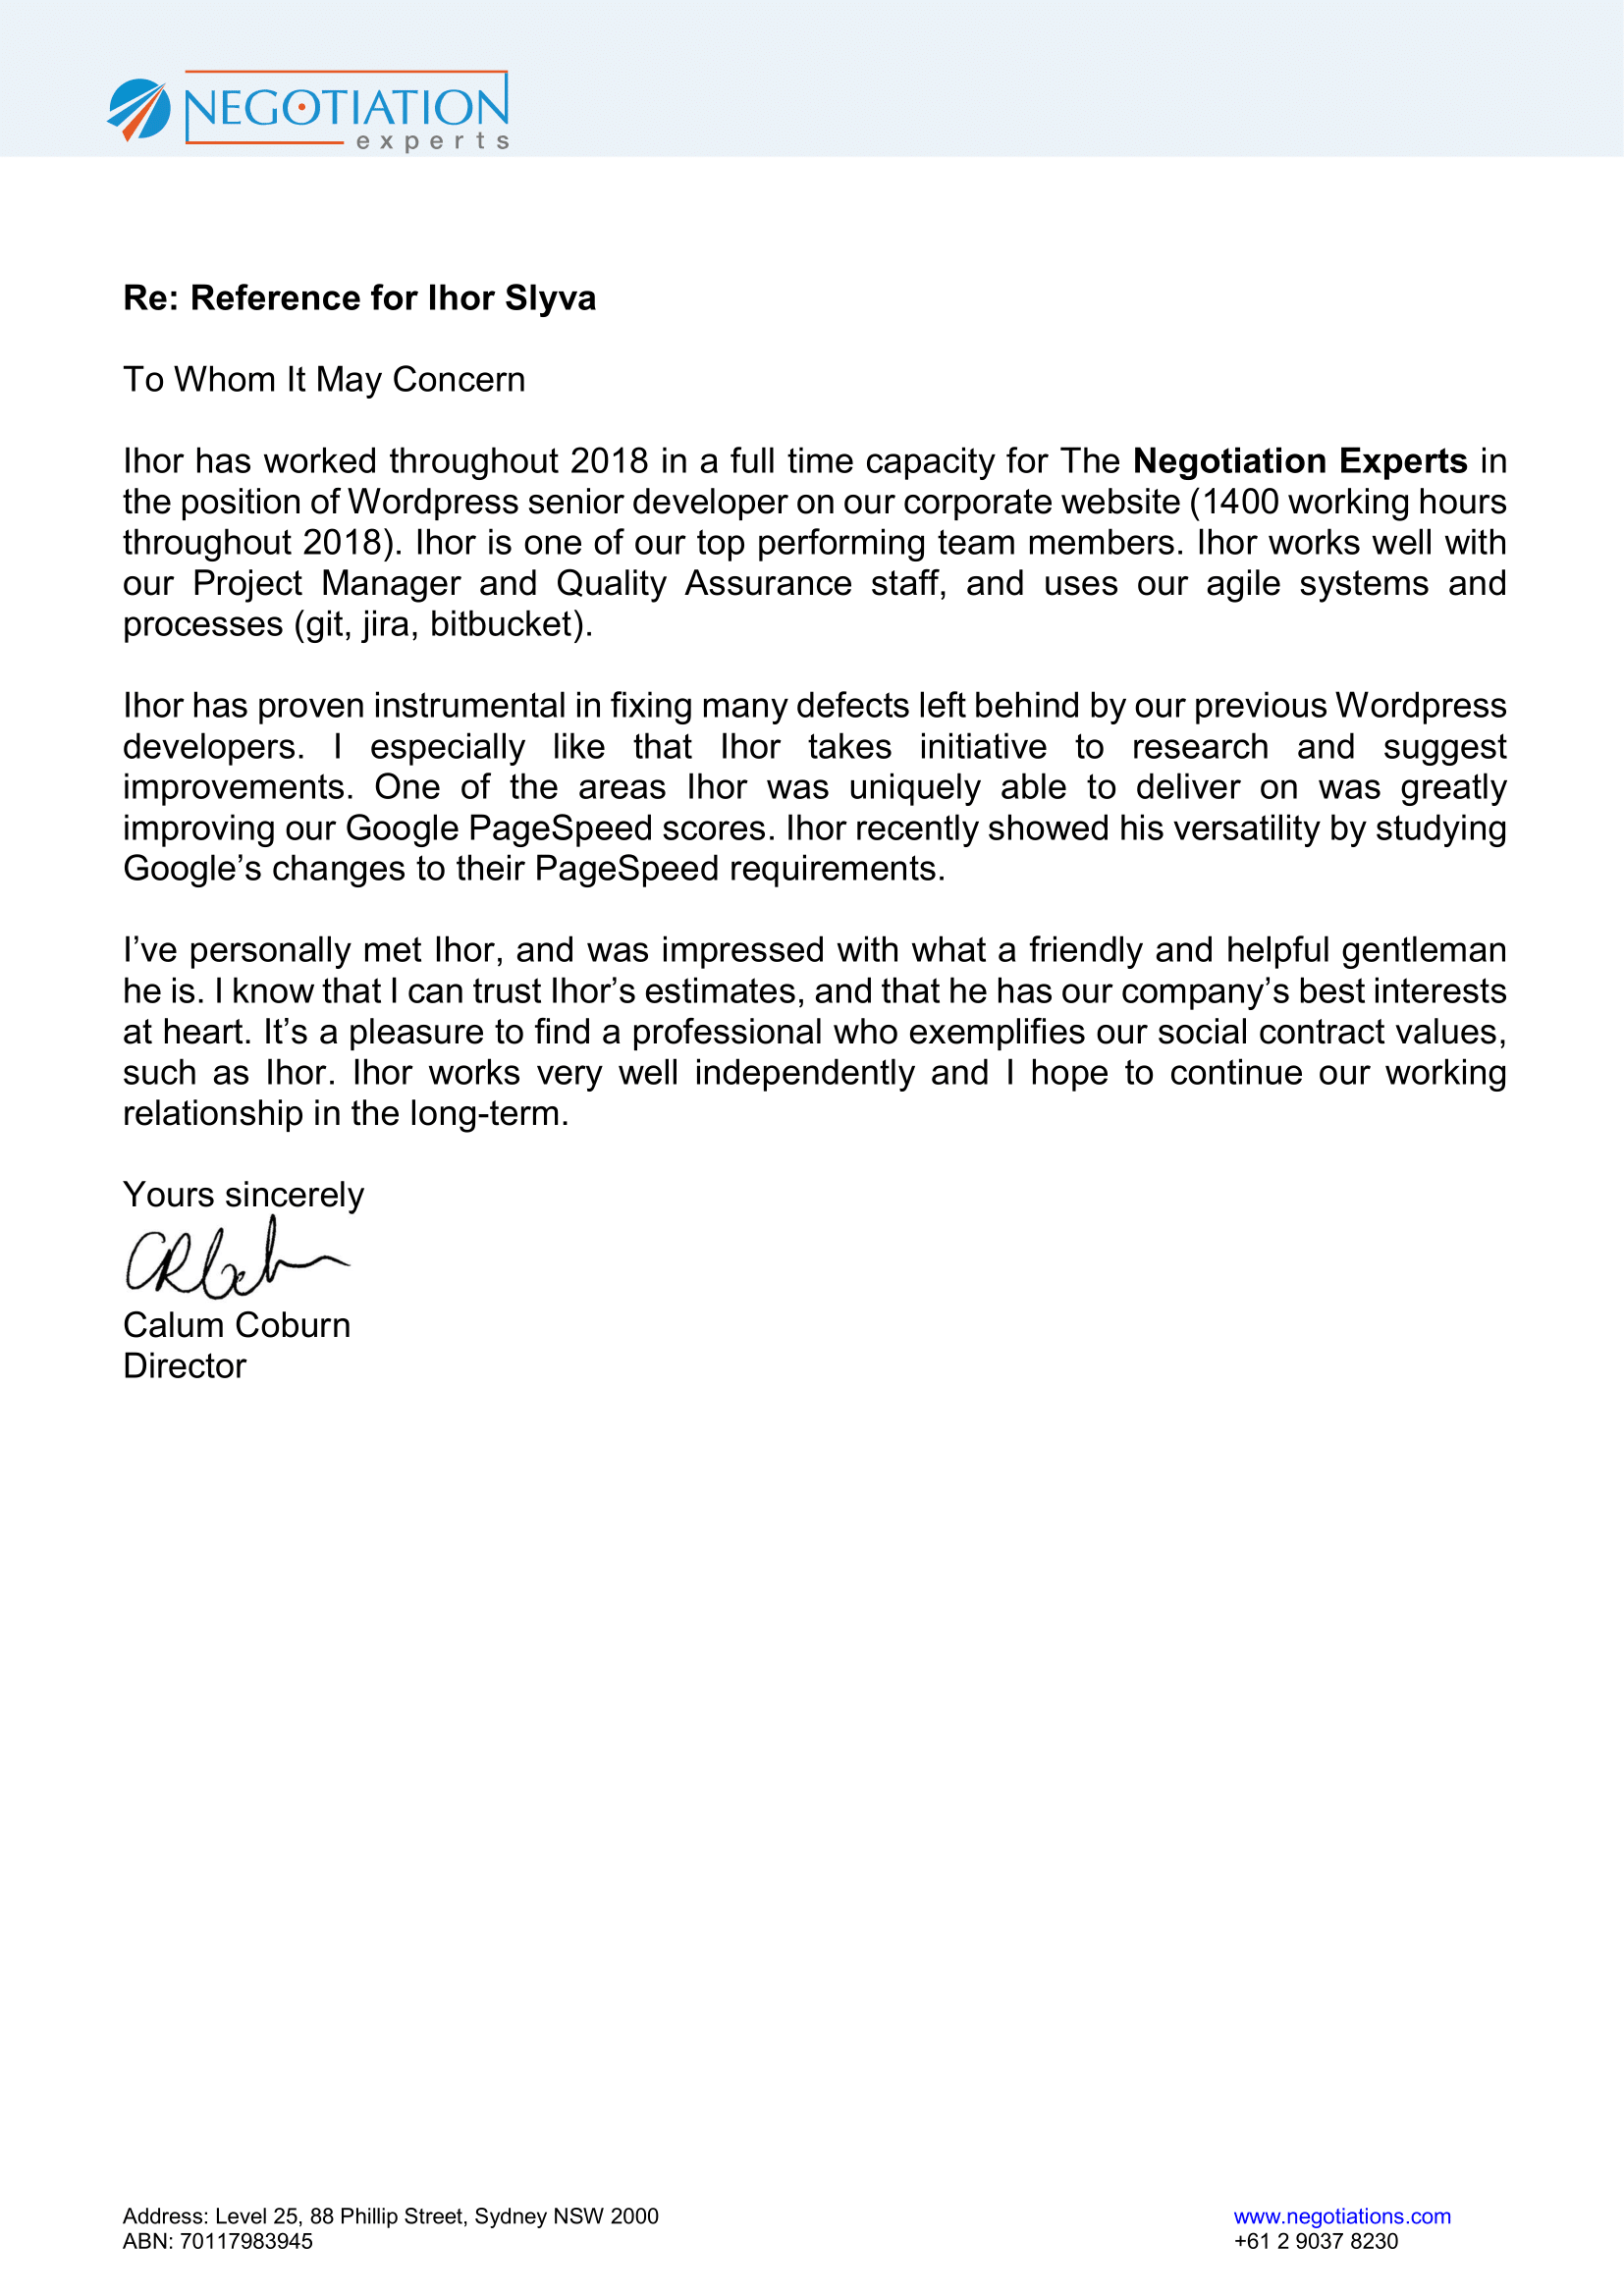 negotiation-experts-2018-recommendation-letter